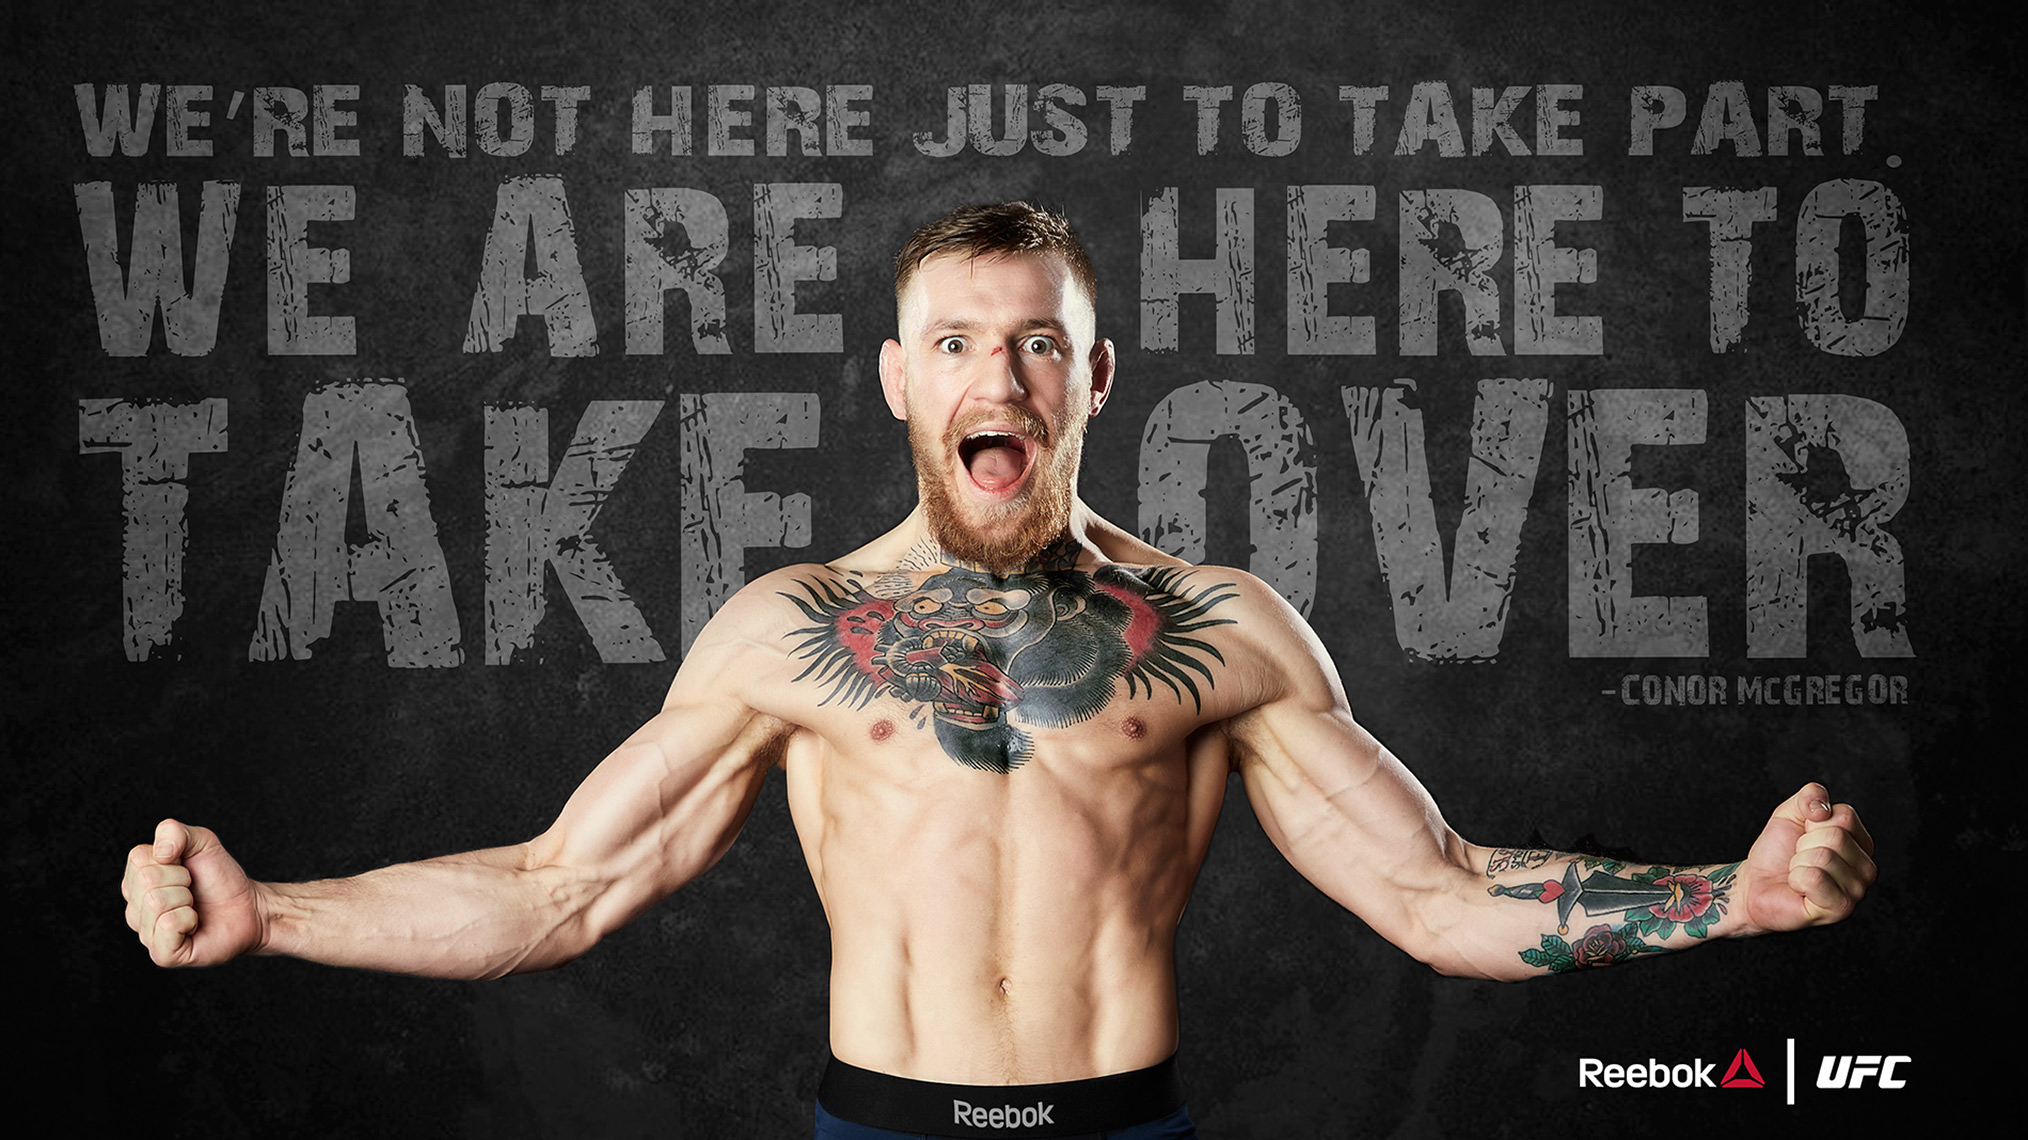 UFC-Conor-Mcgregor-Boston_COMM